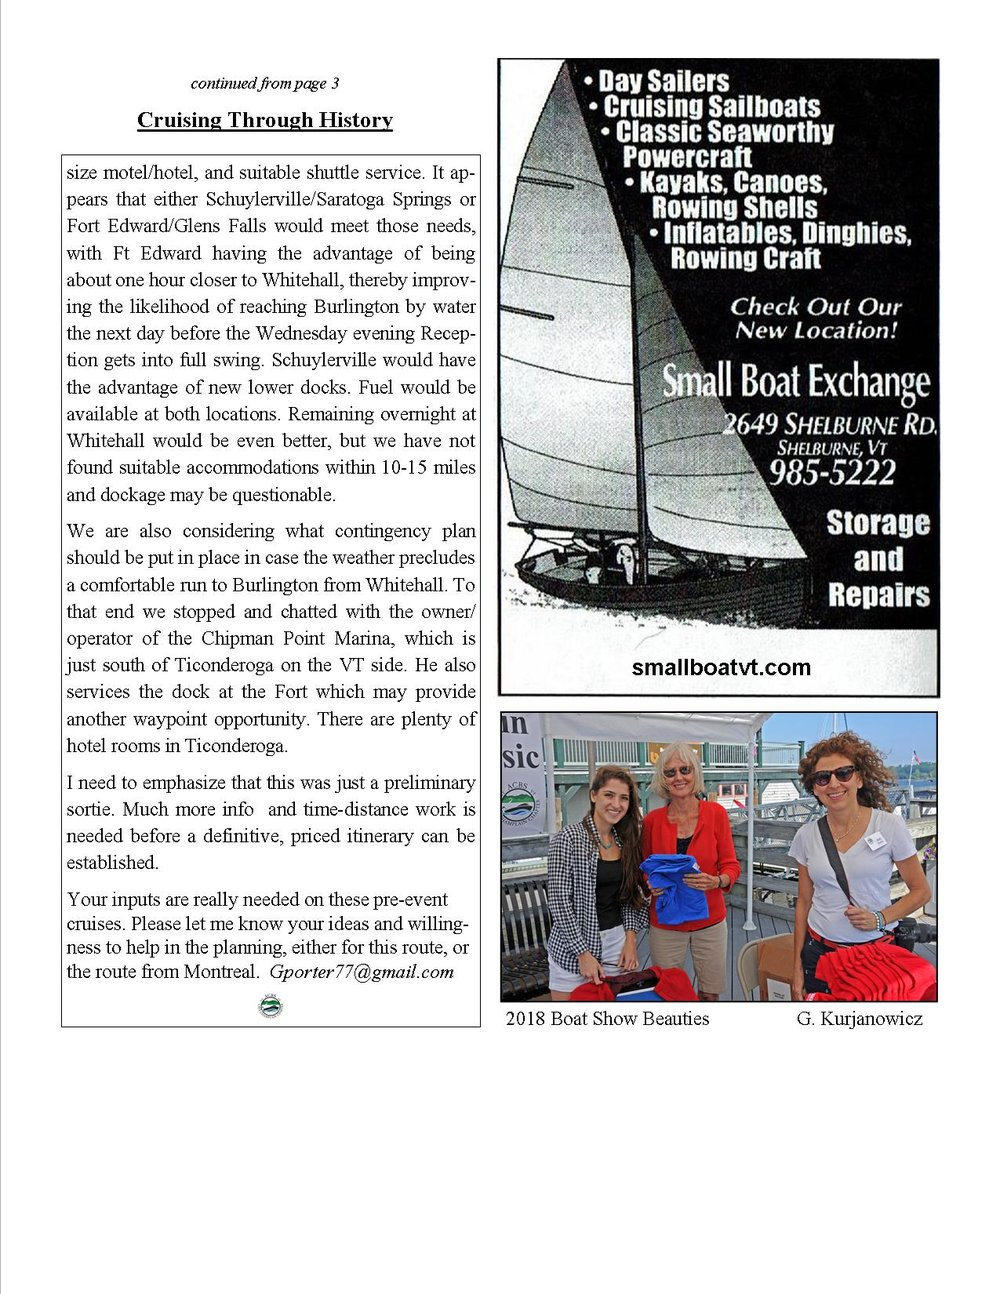 LCACBS Newsletter 9.1.18 Page 5.jpg